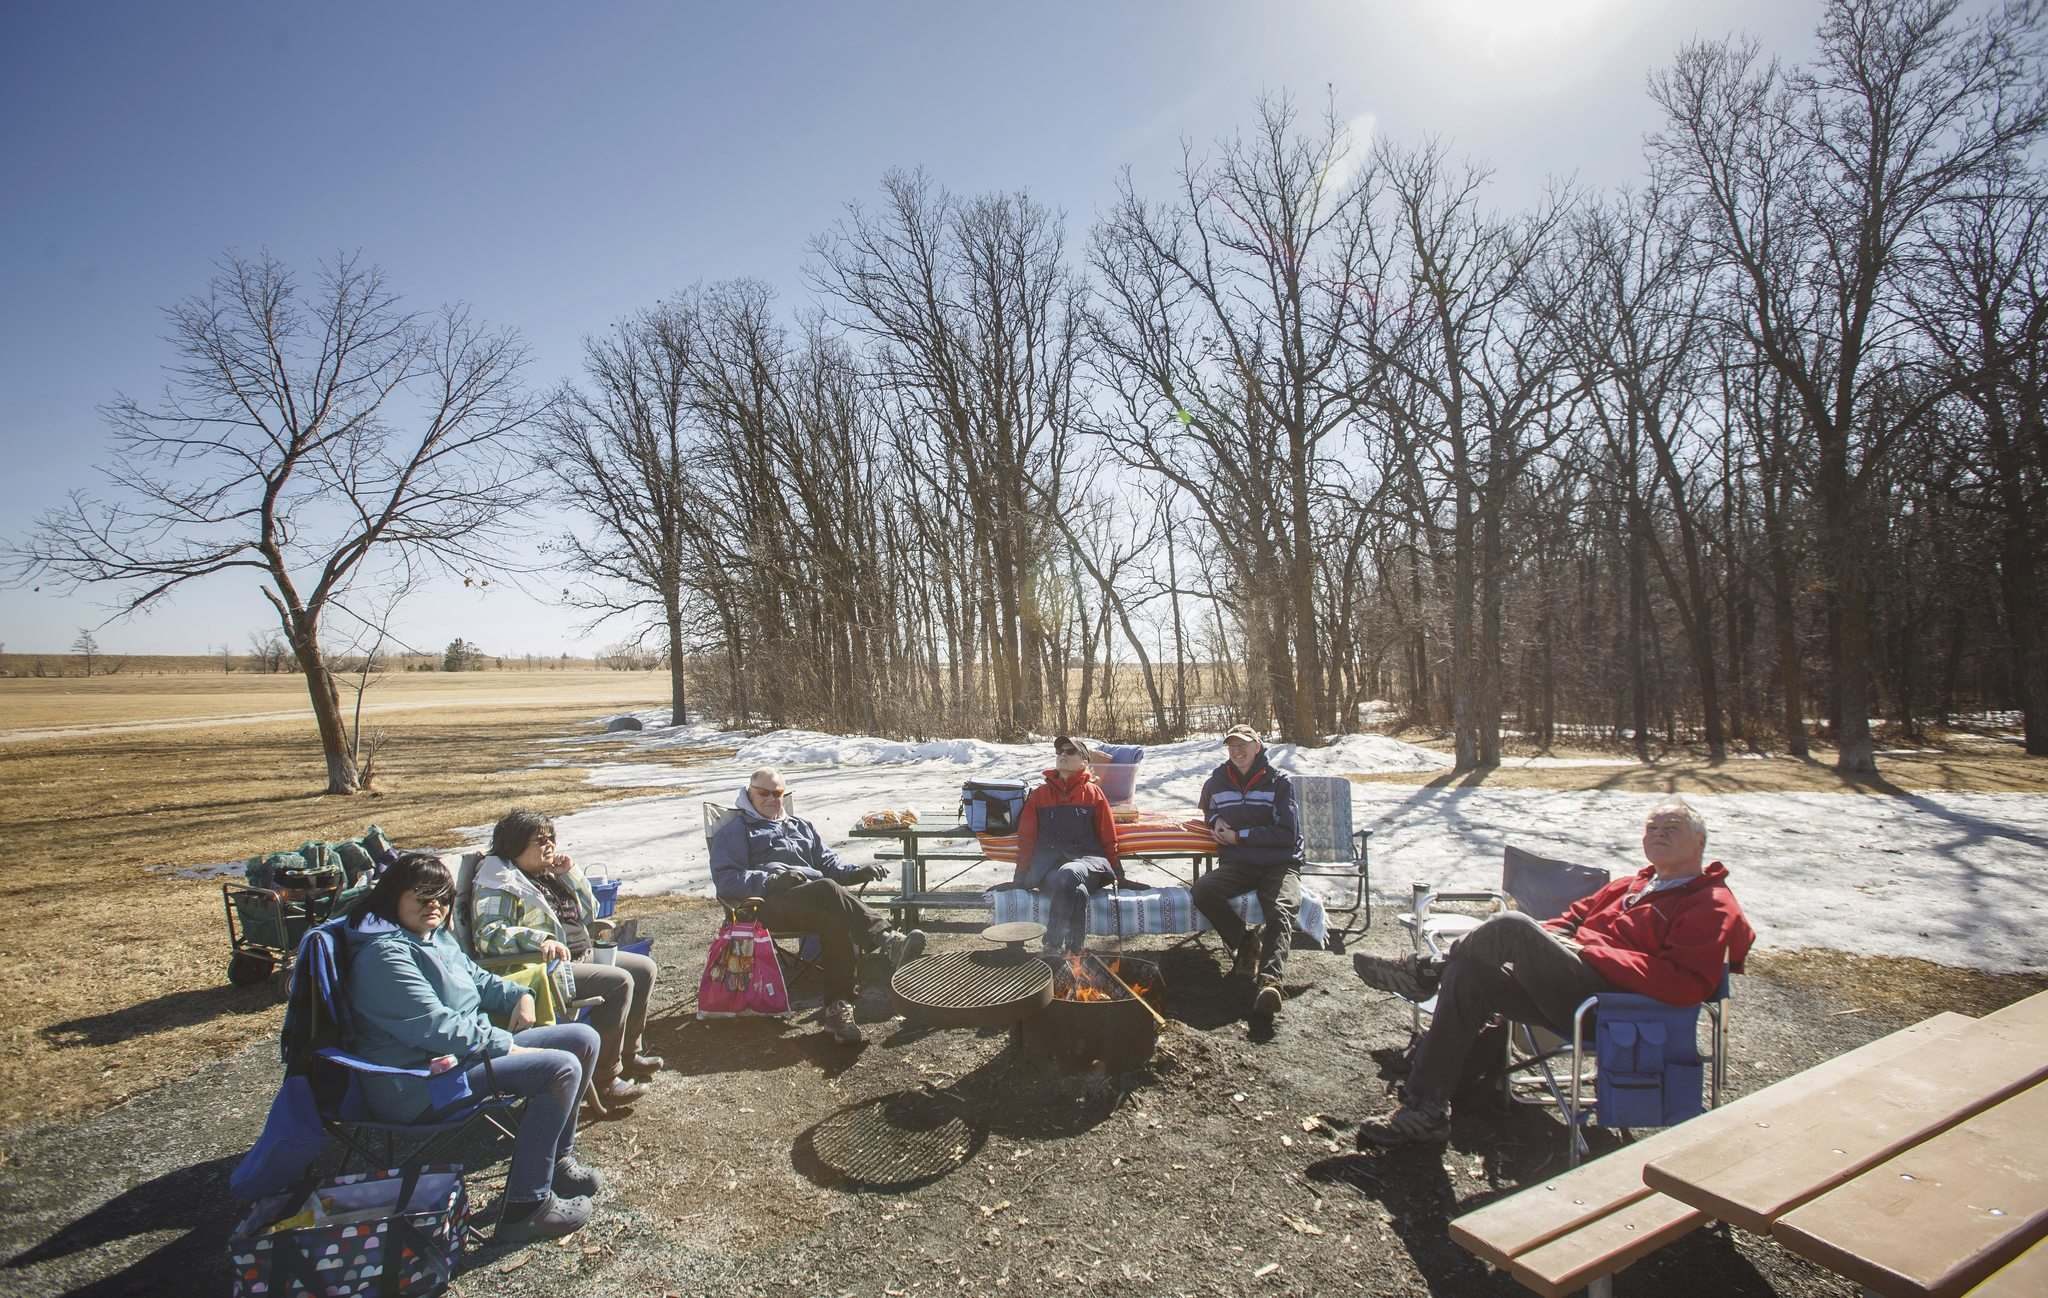 MIKE DEAL / WINNIPEG FREE PRESS</p><p>A group of friends maintaining social distancing rules spend the afternoon catching up with each other at La Barriere park Friday. (from left) Lisa Shimoda-Loechner, Joy and Ted Letkemann , Cynthia and Brent Stacey and Harald Asu.</p>